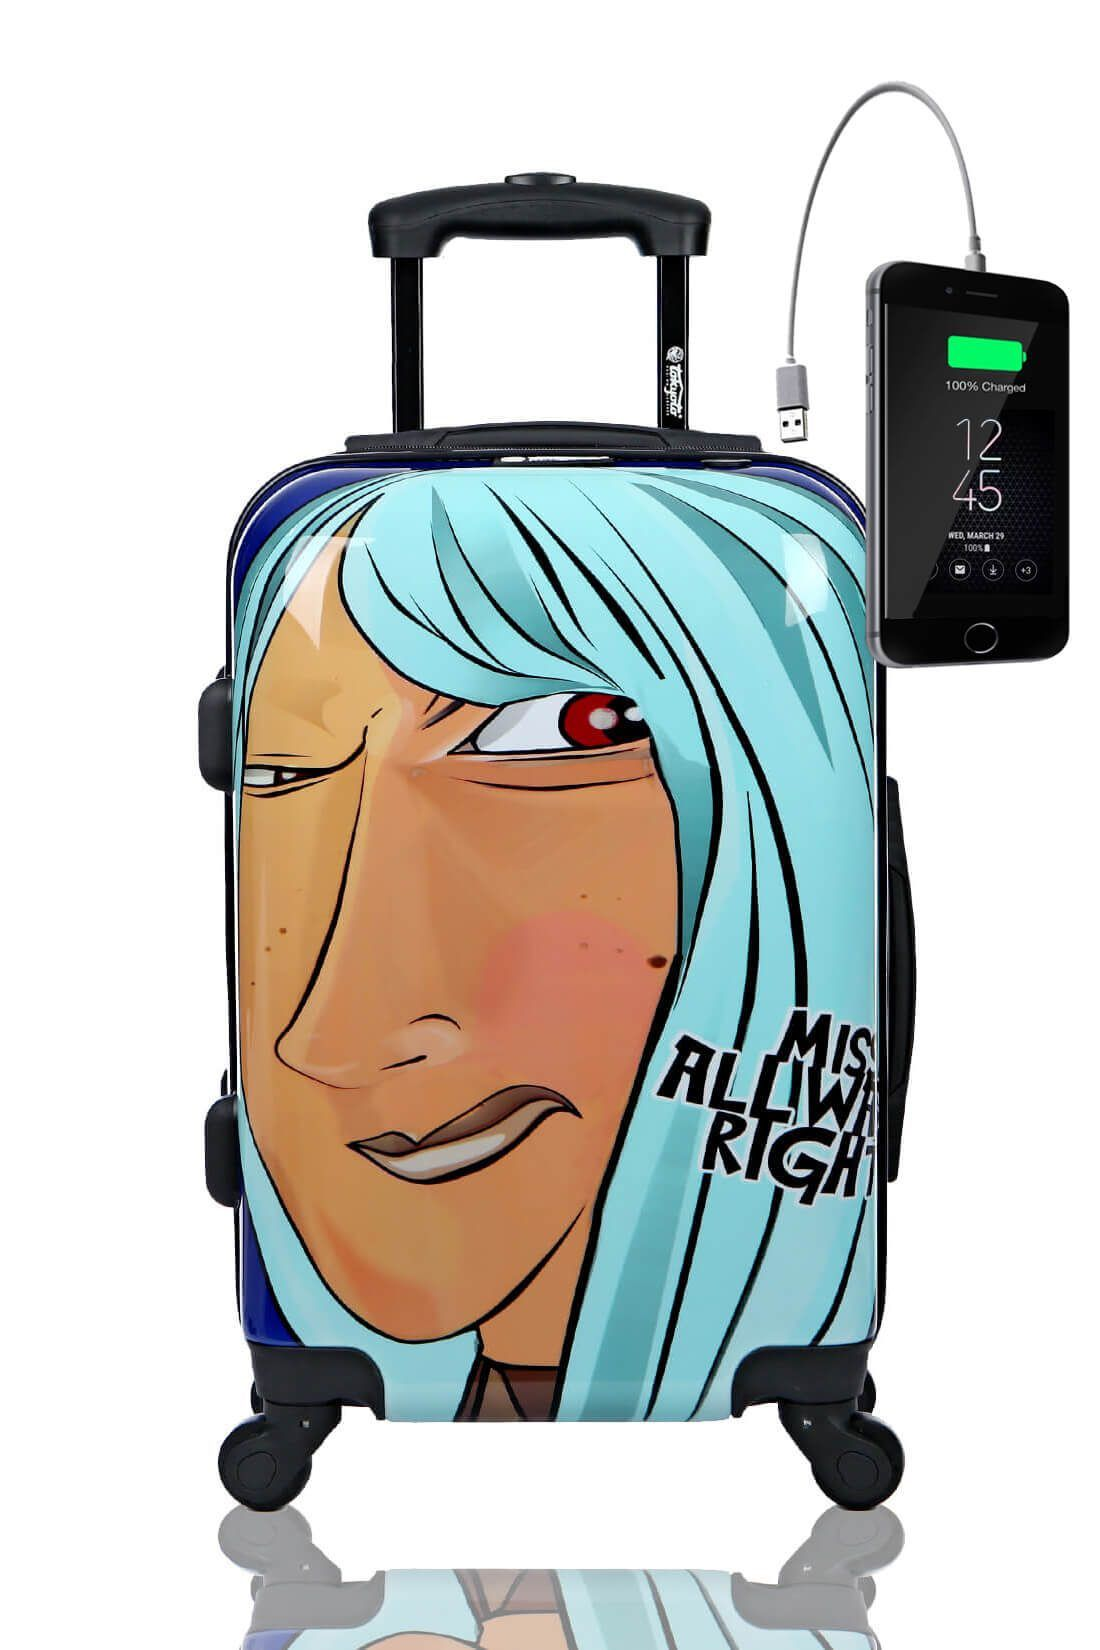 MISS ALWAYS RIGHT Trolley Valigia Cabina Bagaglio Bambini Juvenile Caricatore Powerbank